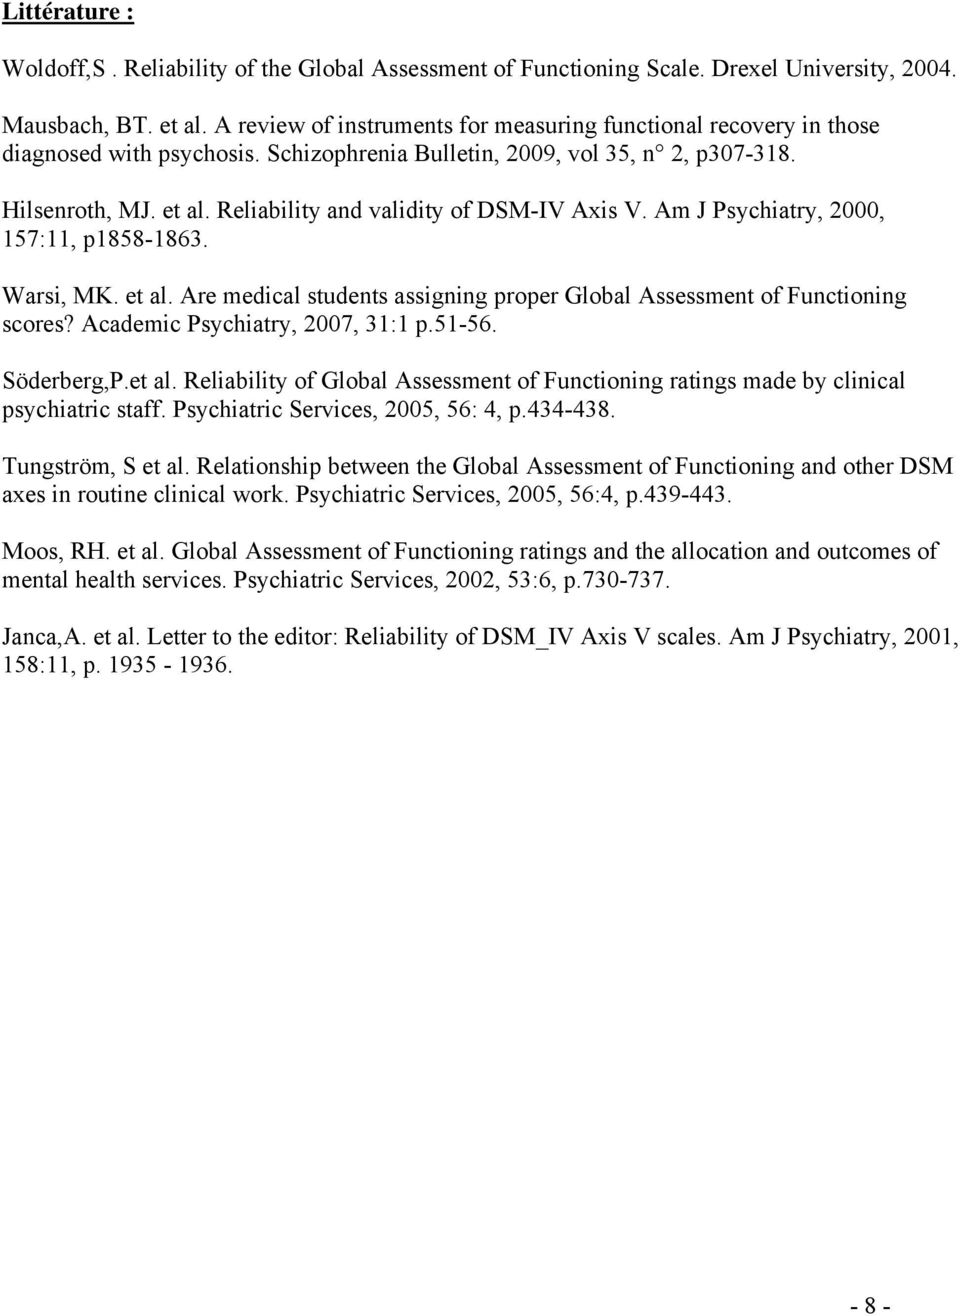 Reliability and validity of DSM-IV Axis V. Am J Psychiatry, 2000, 157:11, p1858-1863. Warsi, MK. et al. Are medical students assigning proper Global Assessment of Functioning scores?